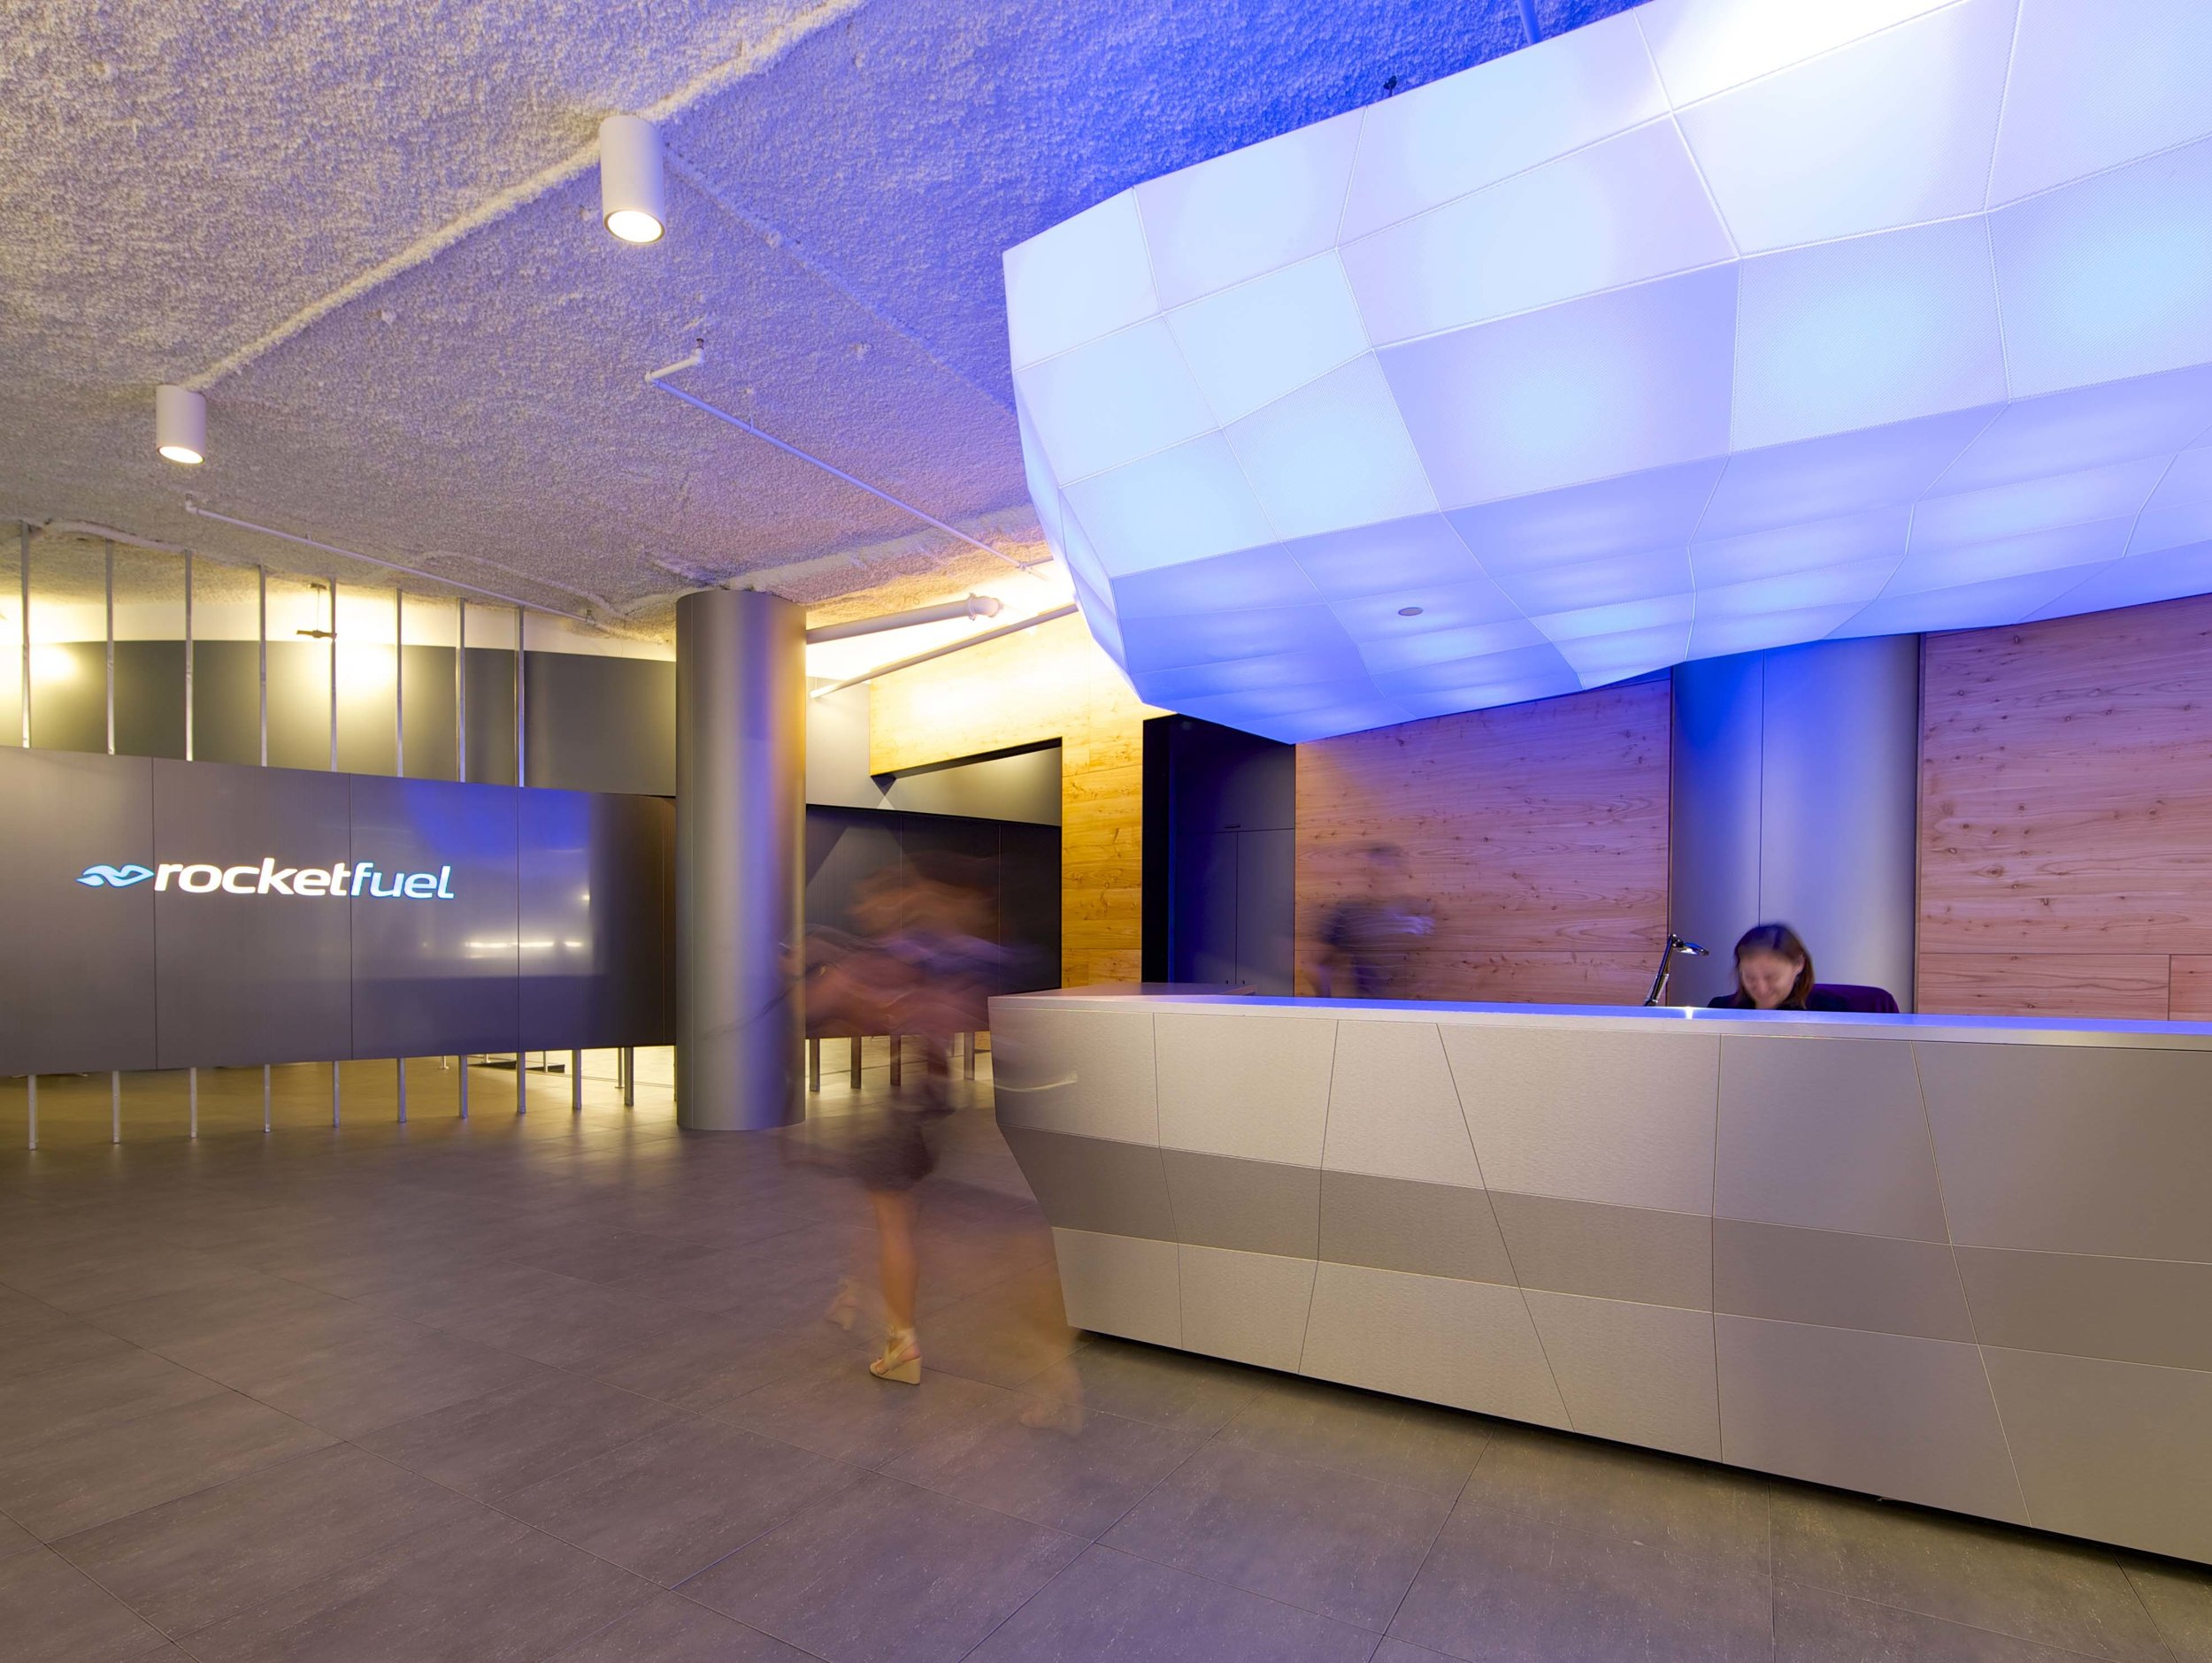 Reception area with a woman behind the desk and blue lighting at Rocketfuel headquarters. MEP by 2L Engineering.